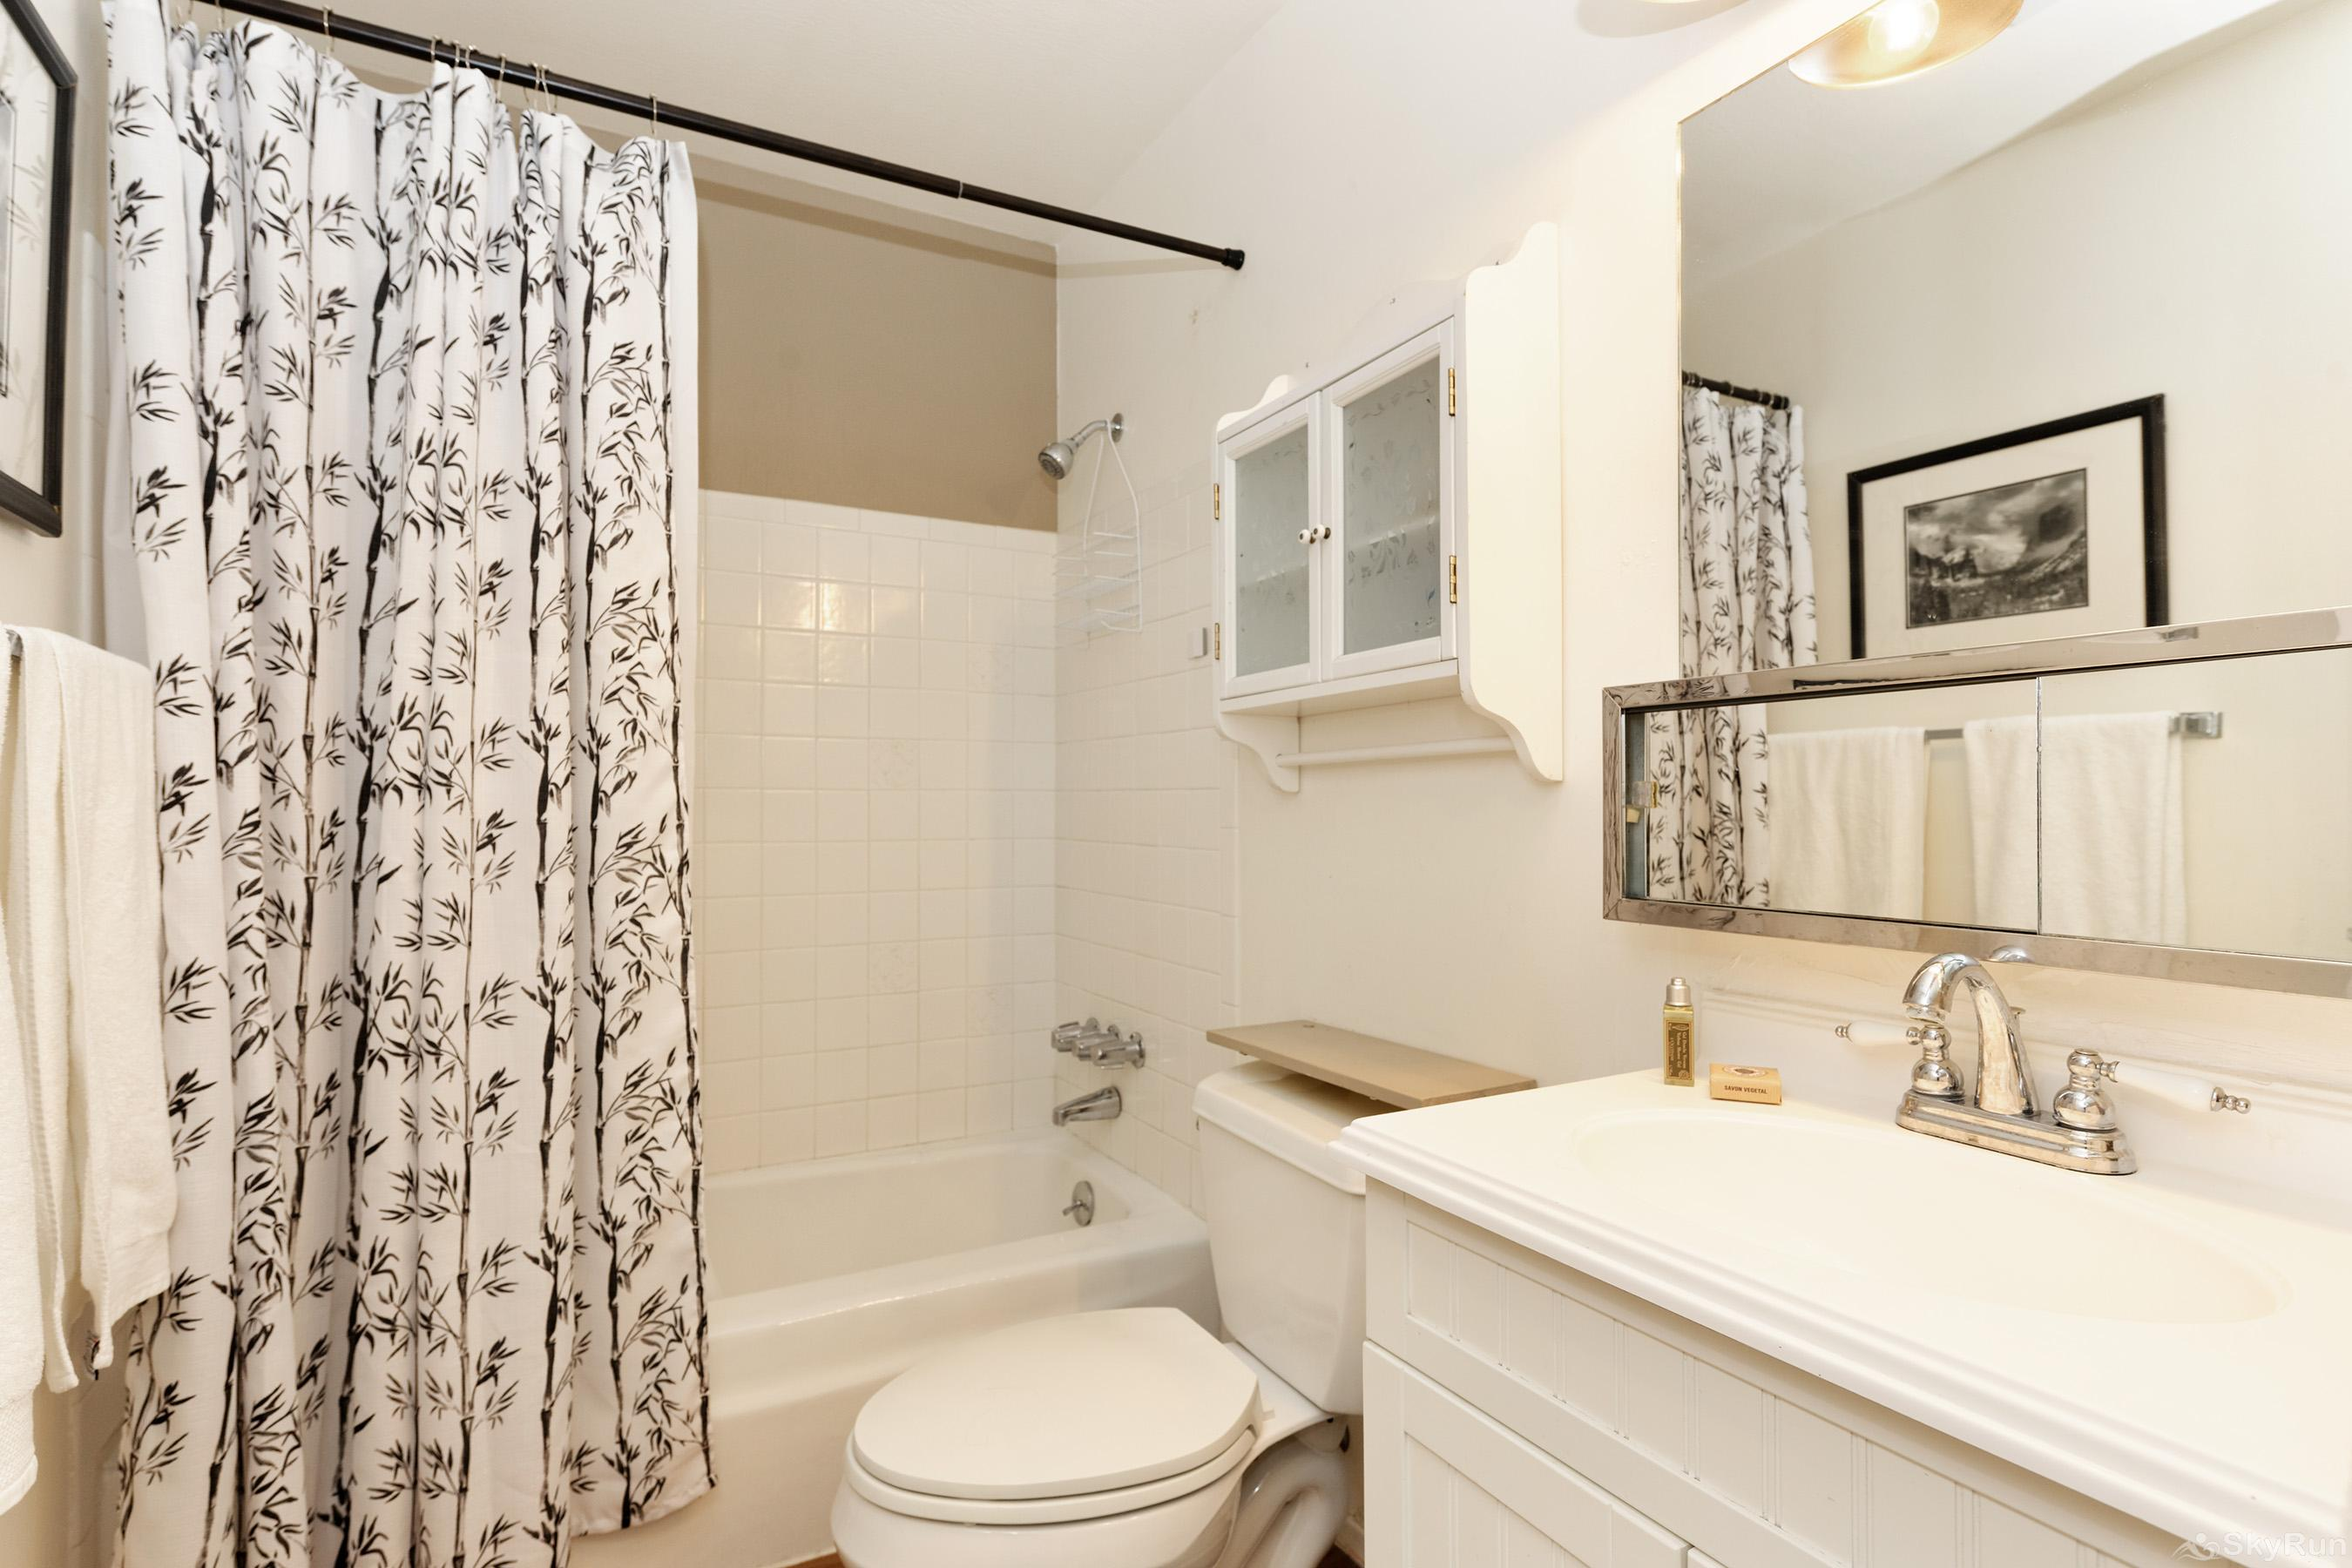 Timber Ridge Unit 2E Bathroom with all the basics waiting for you